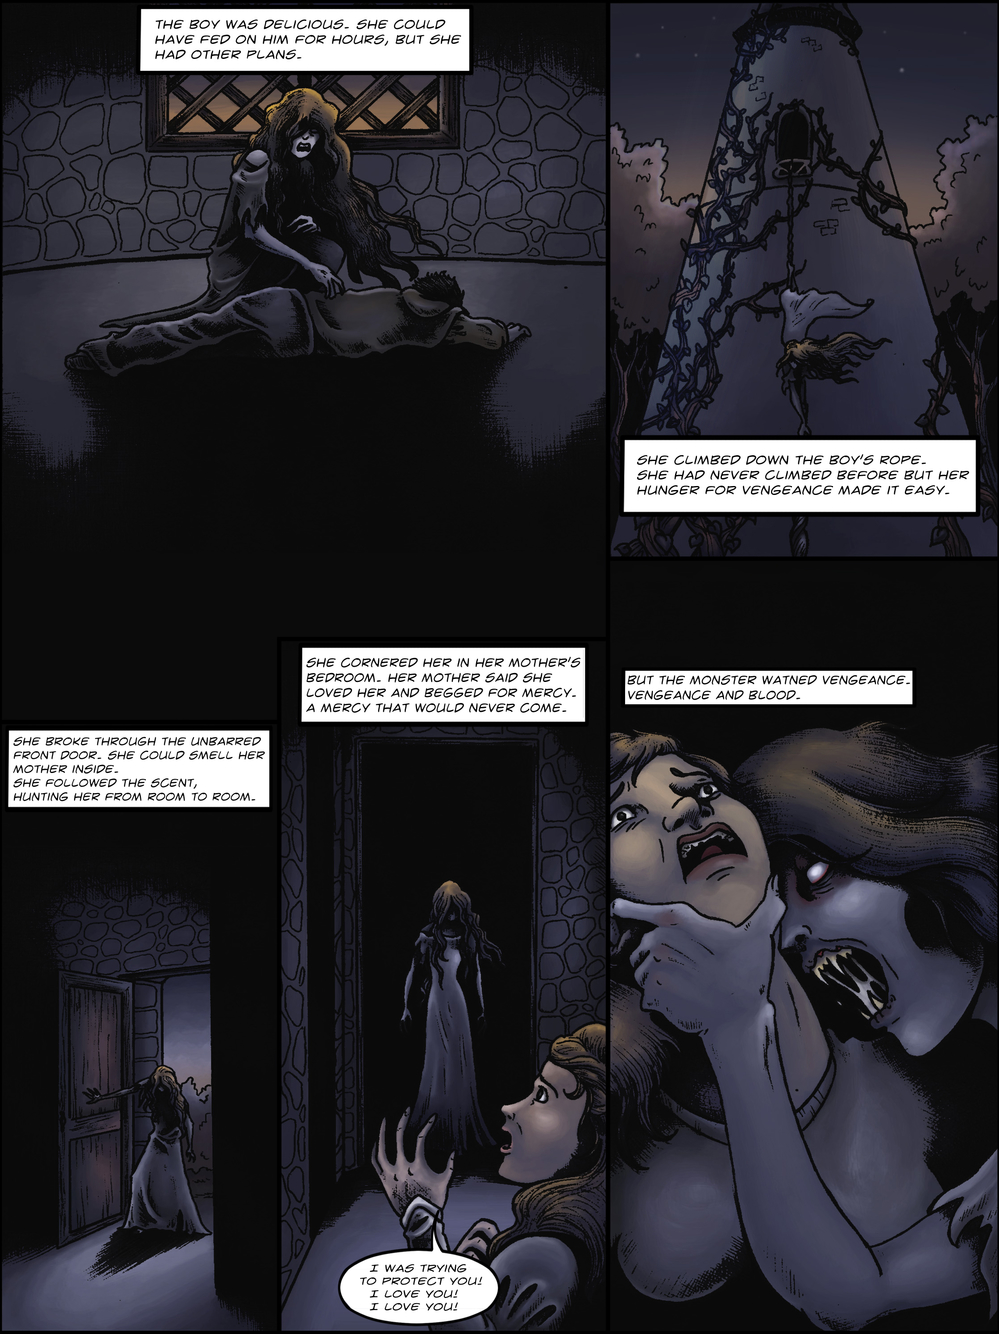 THE TOWER page 6 - story 1 in The Book of Lies